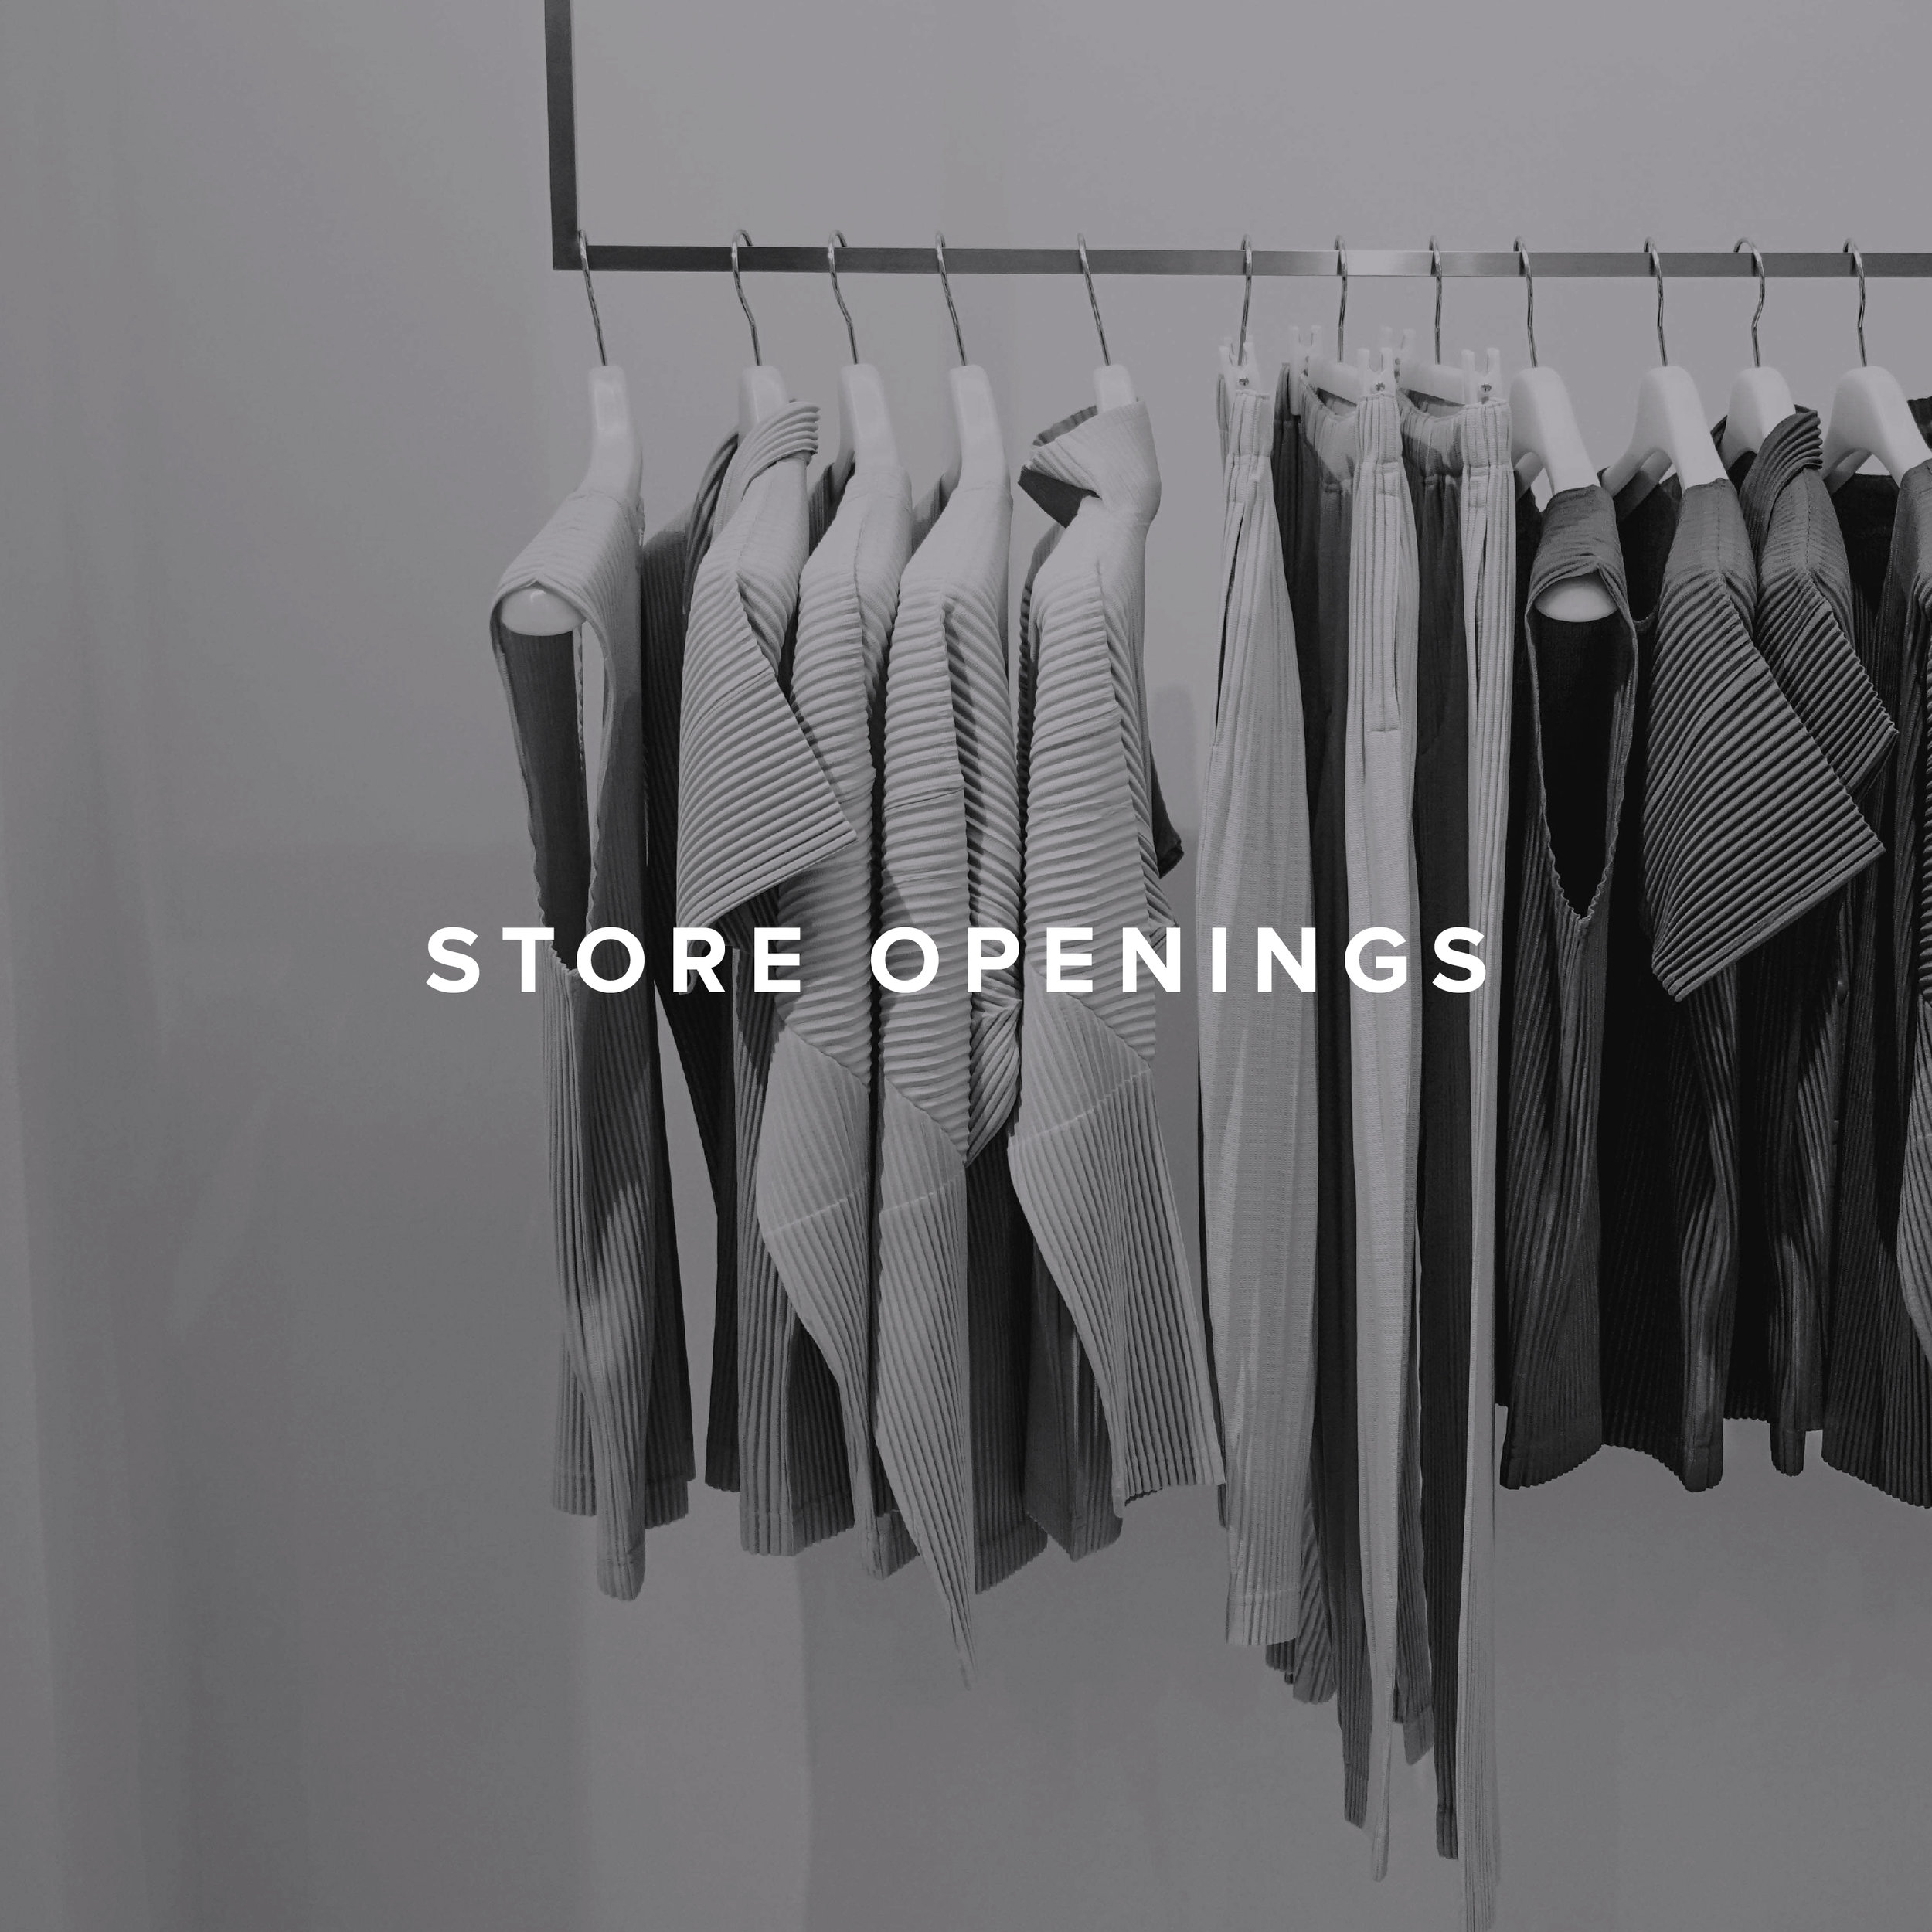 Studio openings, location expansions or joining existing retailers; we secure both regional and national interest.